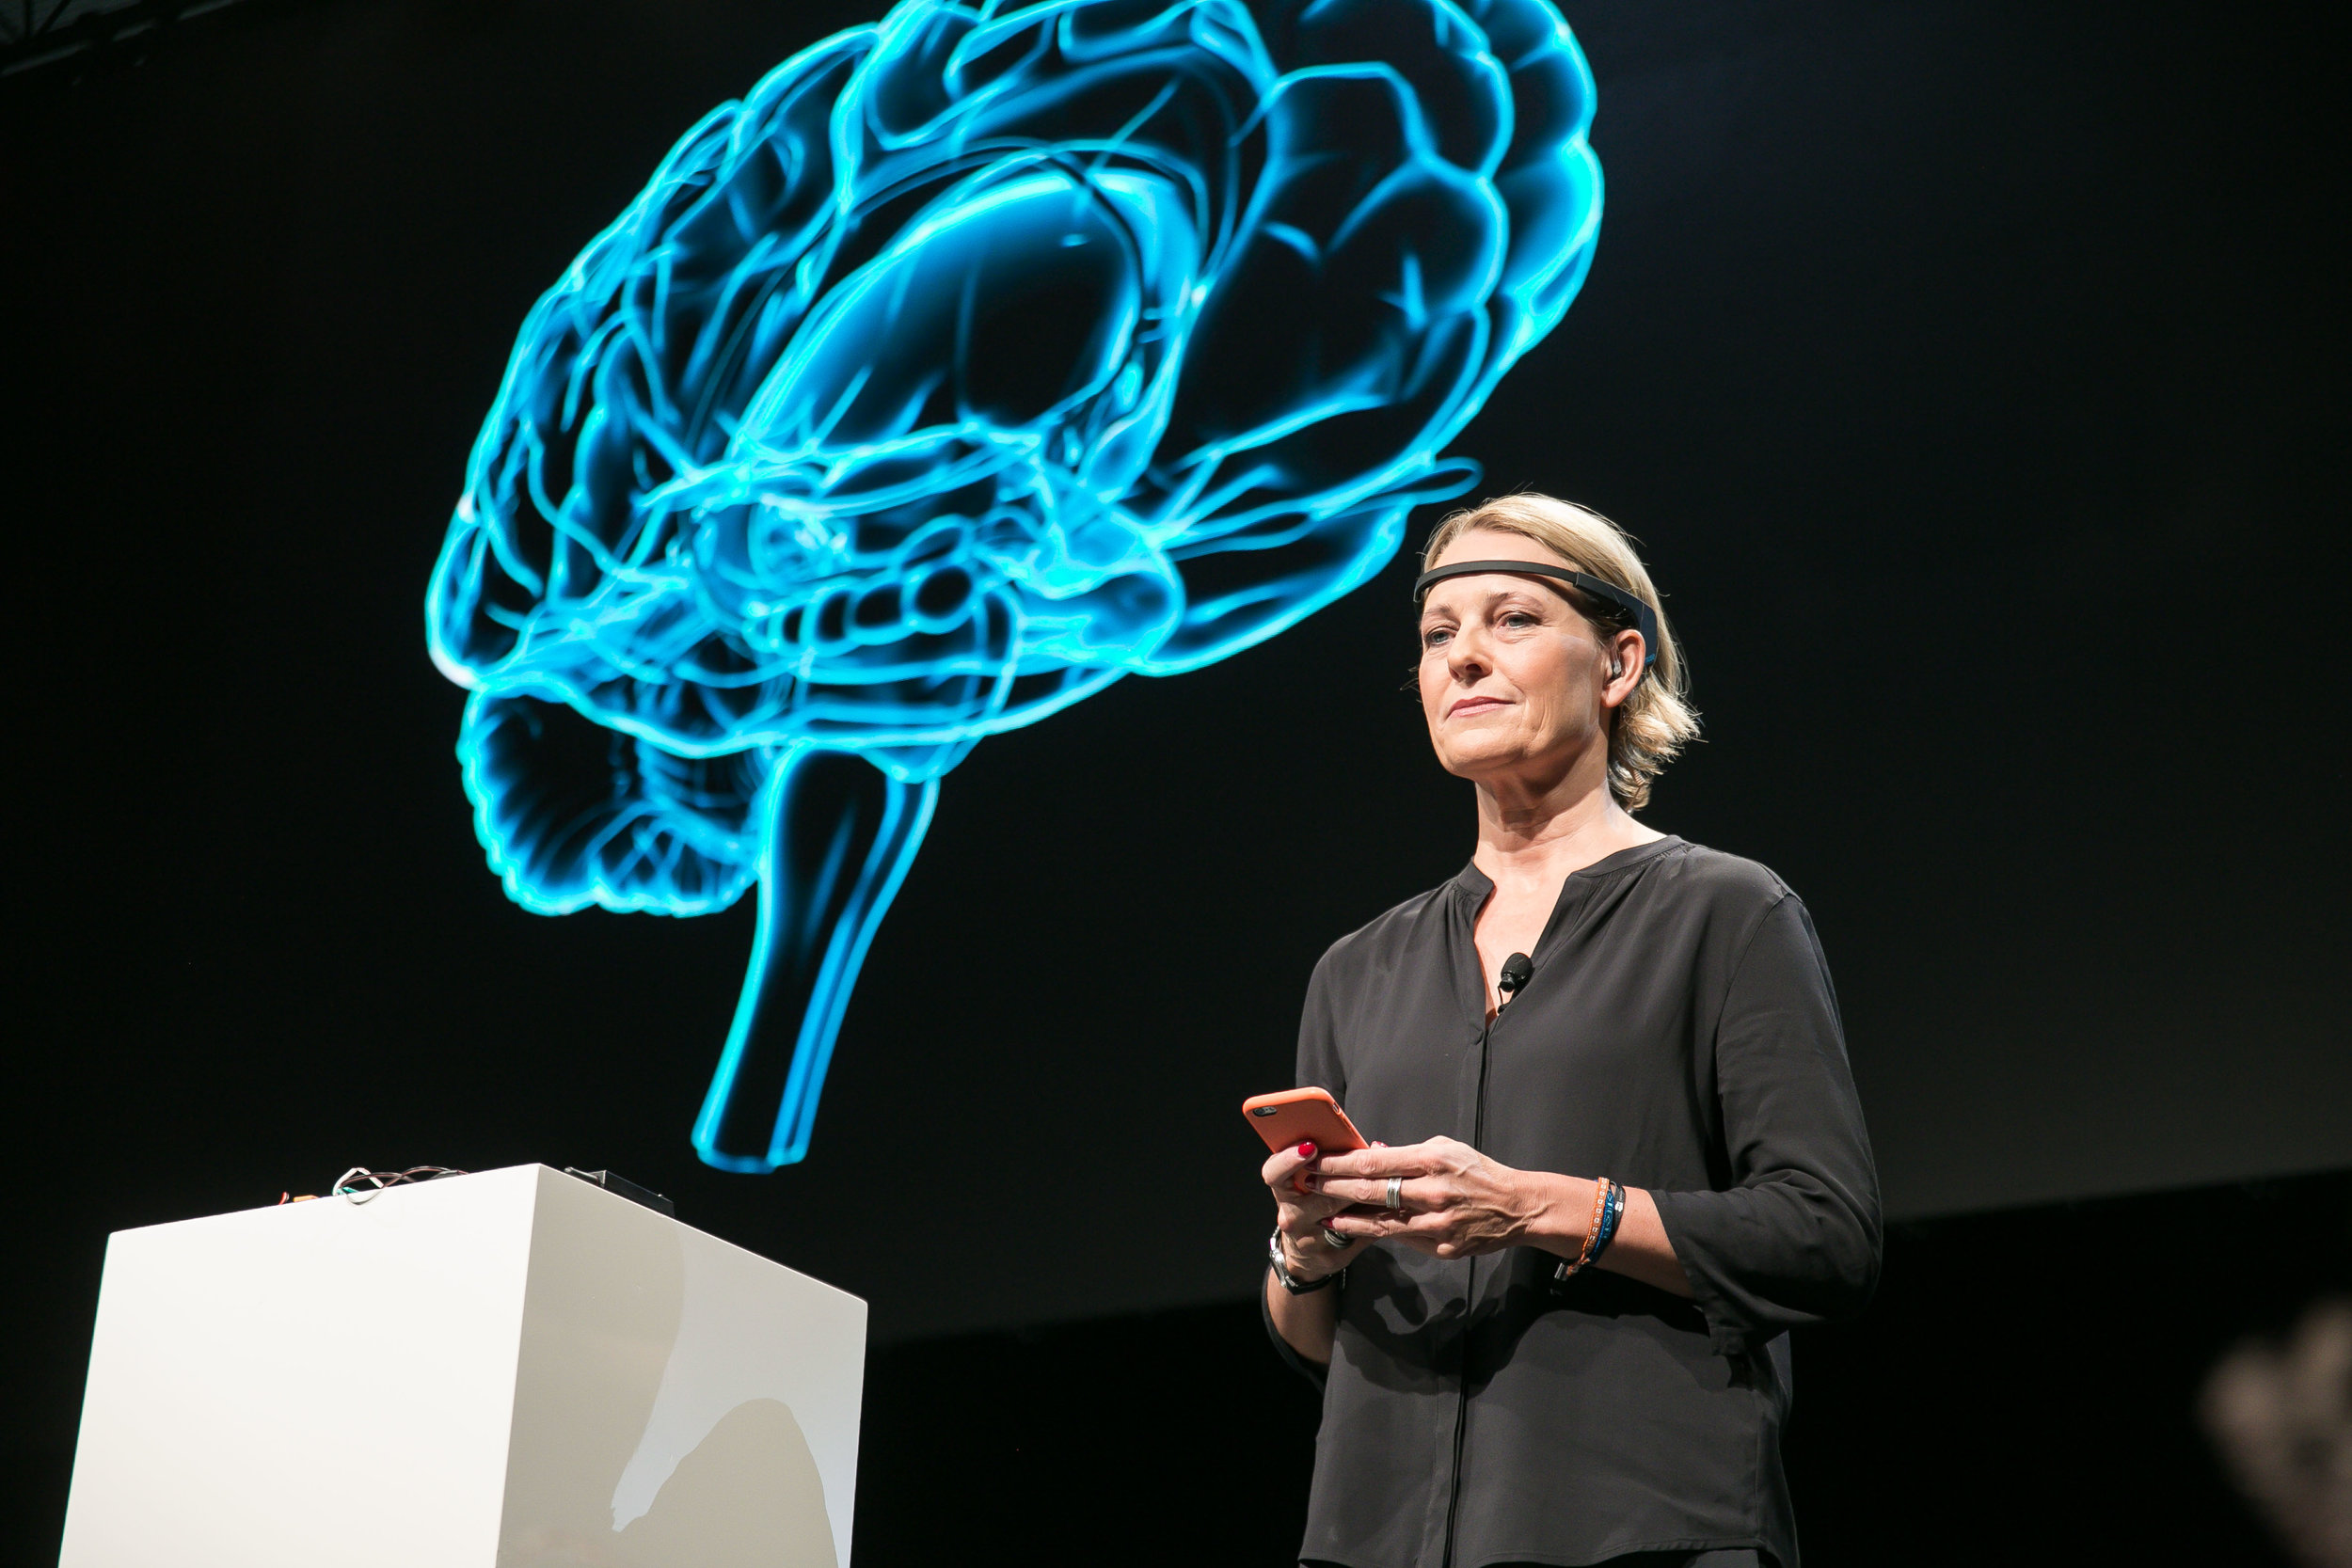 Journalist and Wirtschaftswoche publisher Miriam Meckel demonstrates how thoughts and emotions can be tracked in a discussion at me Convention 2017 on leadership in the age of neurocapitalism (photo by Markus Nass).